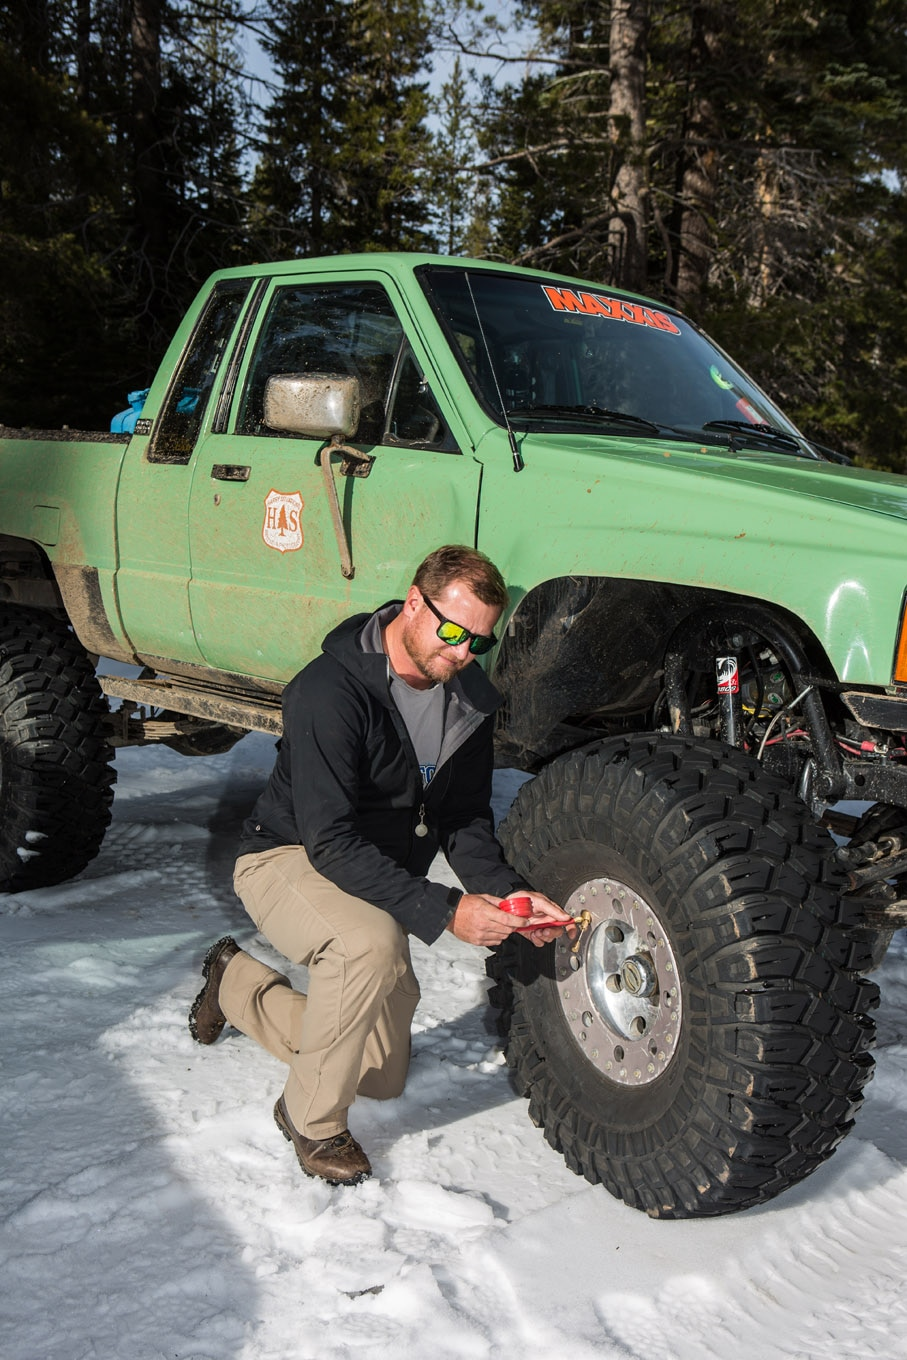 Airing down your tires to increase the contact patch is the best thing you can do increase your vehicle's prowess in deep snow. We typically run single-digit air pressure on tires that have a lot of sidewall and are mounted on beadlock wheels, like these 38-inch Maxxis Creepy Crawlers.